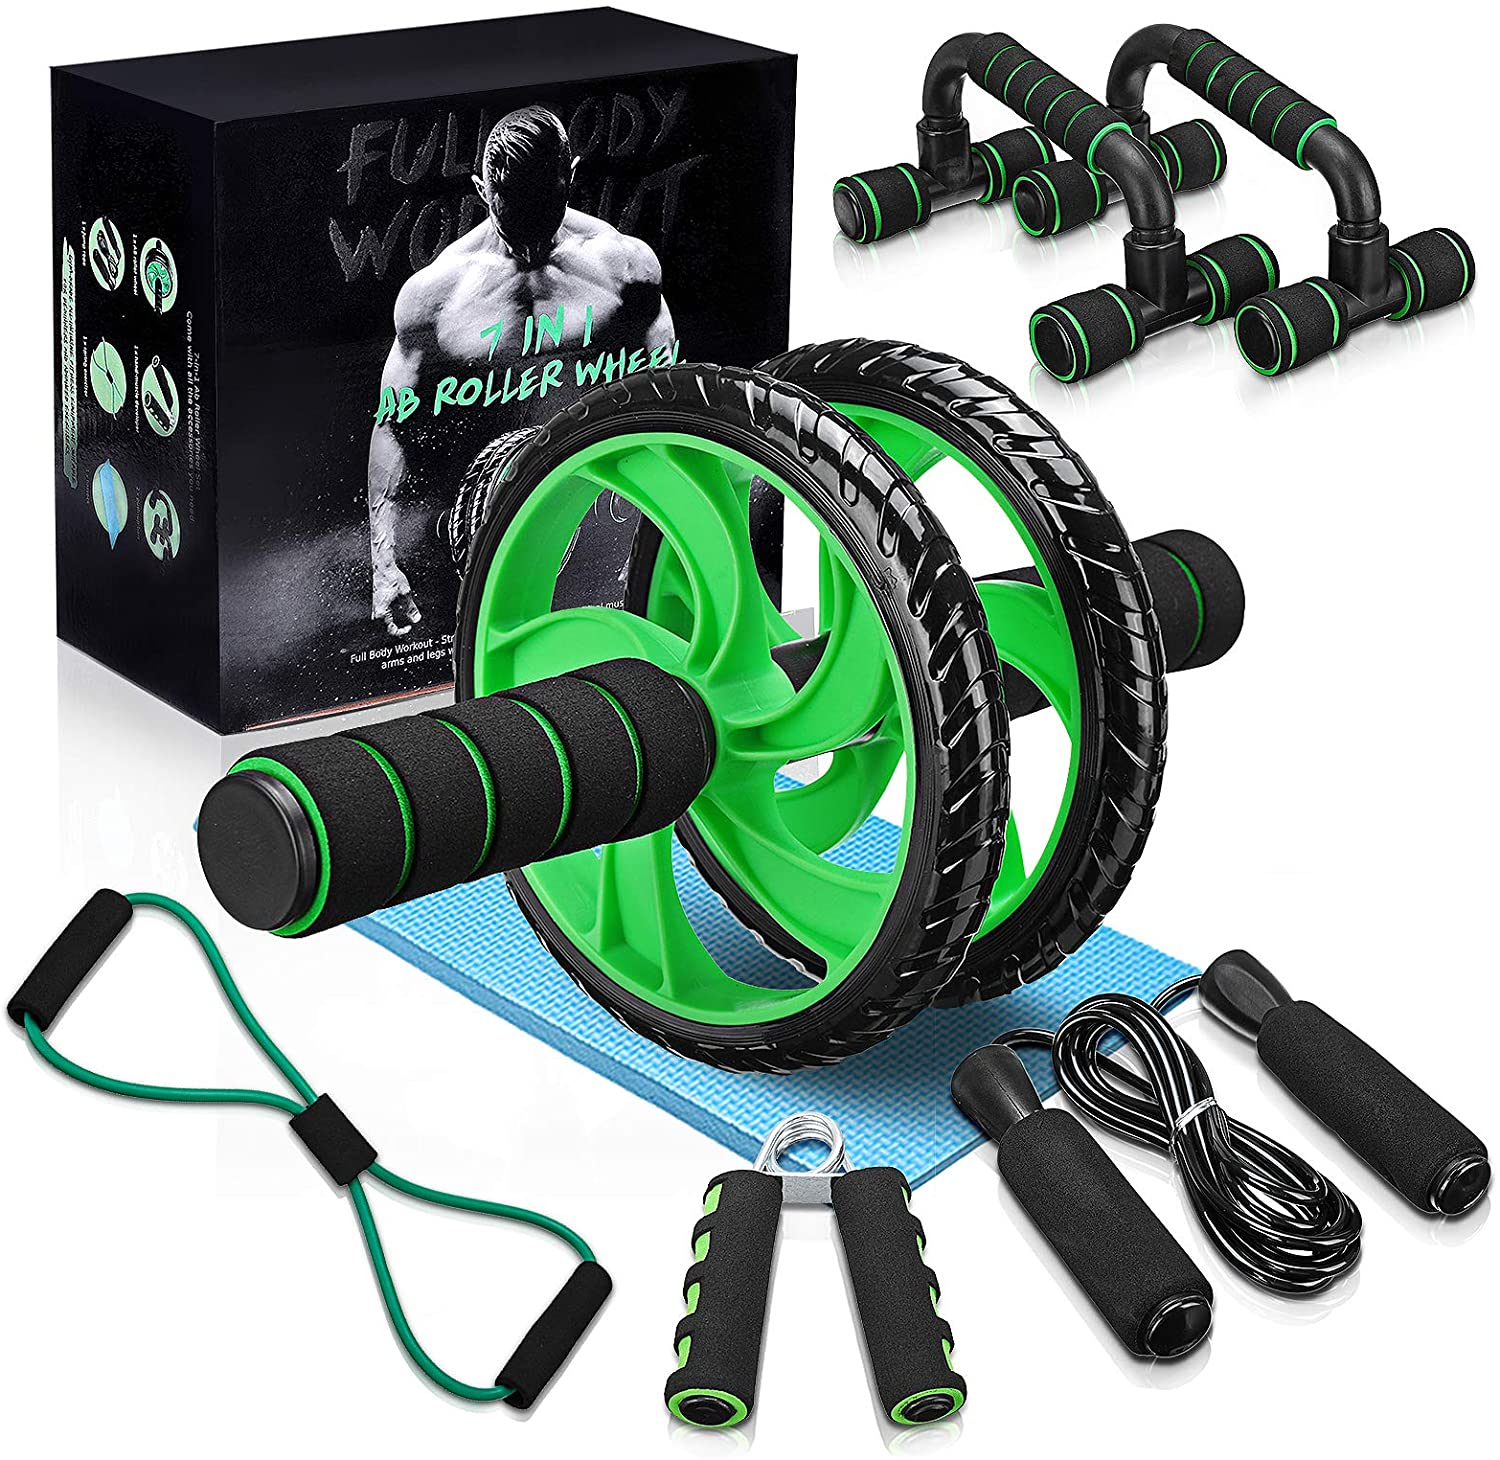 Hand Strengthener and Knee Pad Work Out at Home Kit Skipping Rope Push-Up Bar LYCAON Ab Wheel Roller Set 5 In 1 Includes Ab Wheel Roller